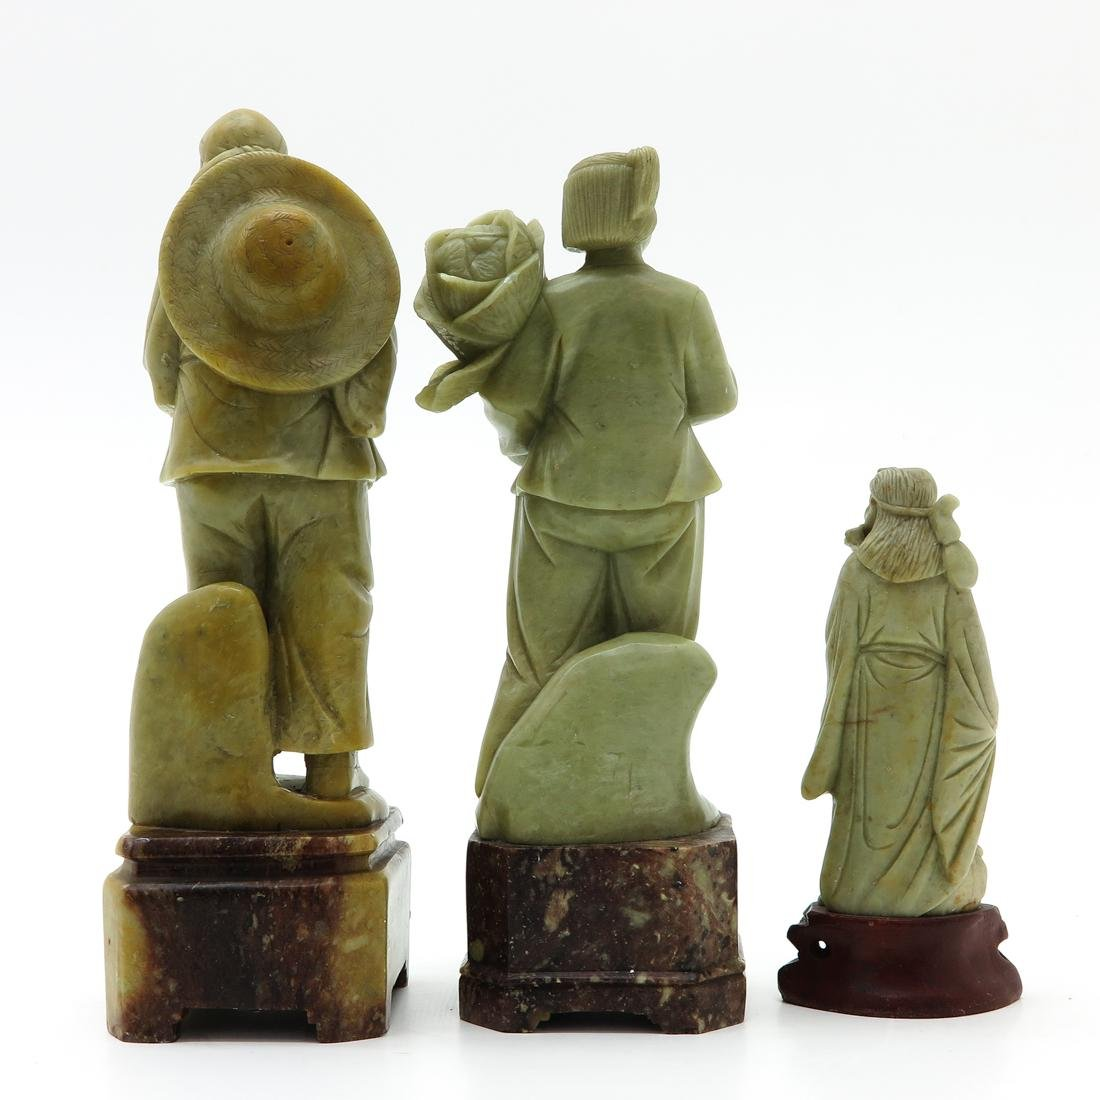 Lot of 3 Soapstone Sculptures - 3